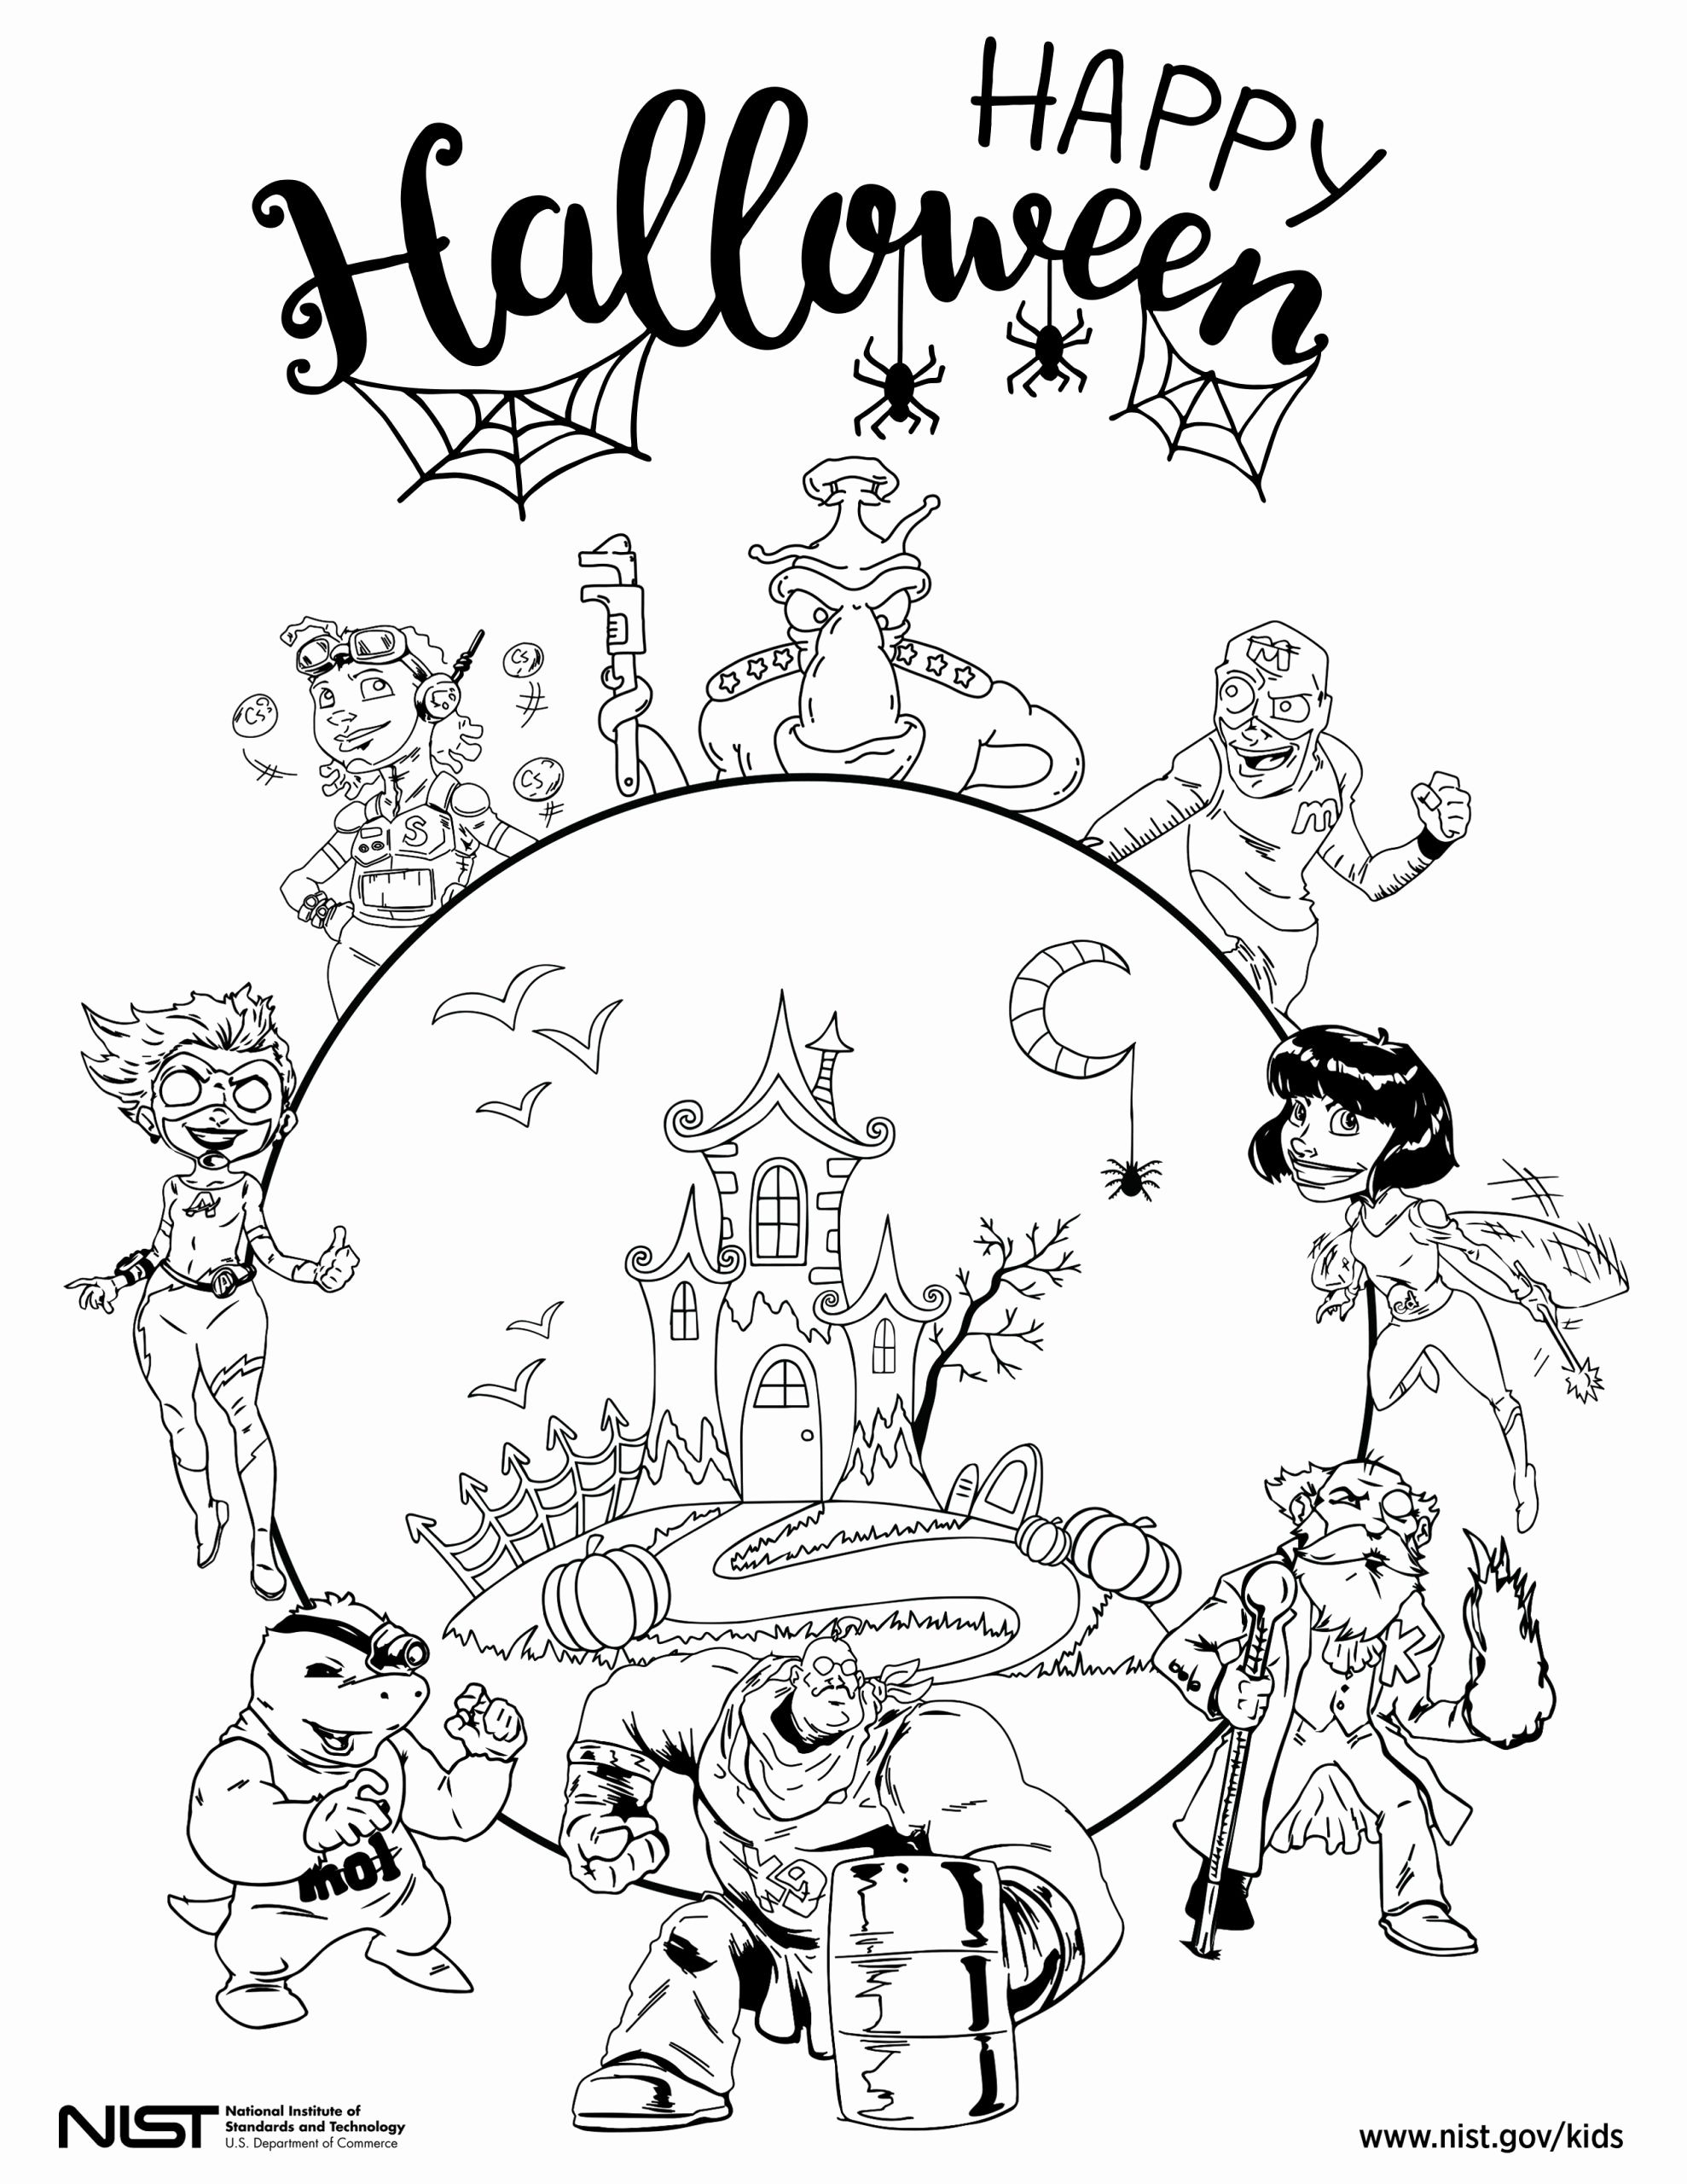 Superhero Halloween Coloring Pages For Kids Superhero Coloring Pages Halloween Coloring Sheets Halloween Coloring Pages